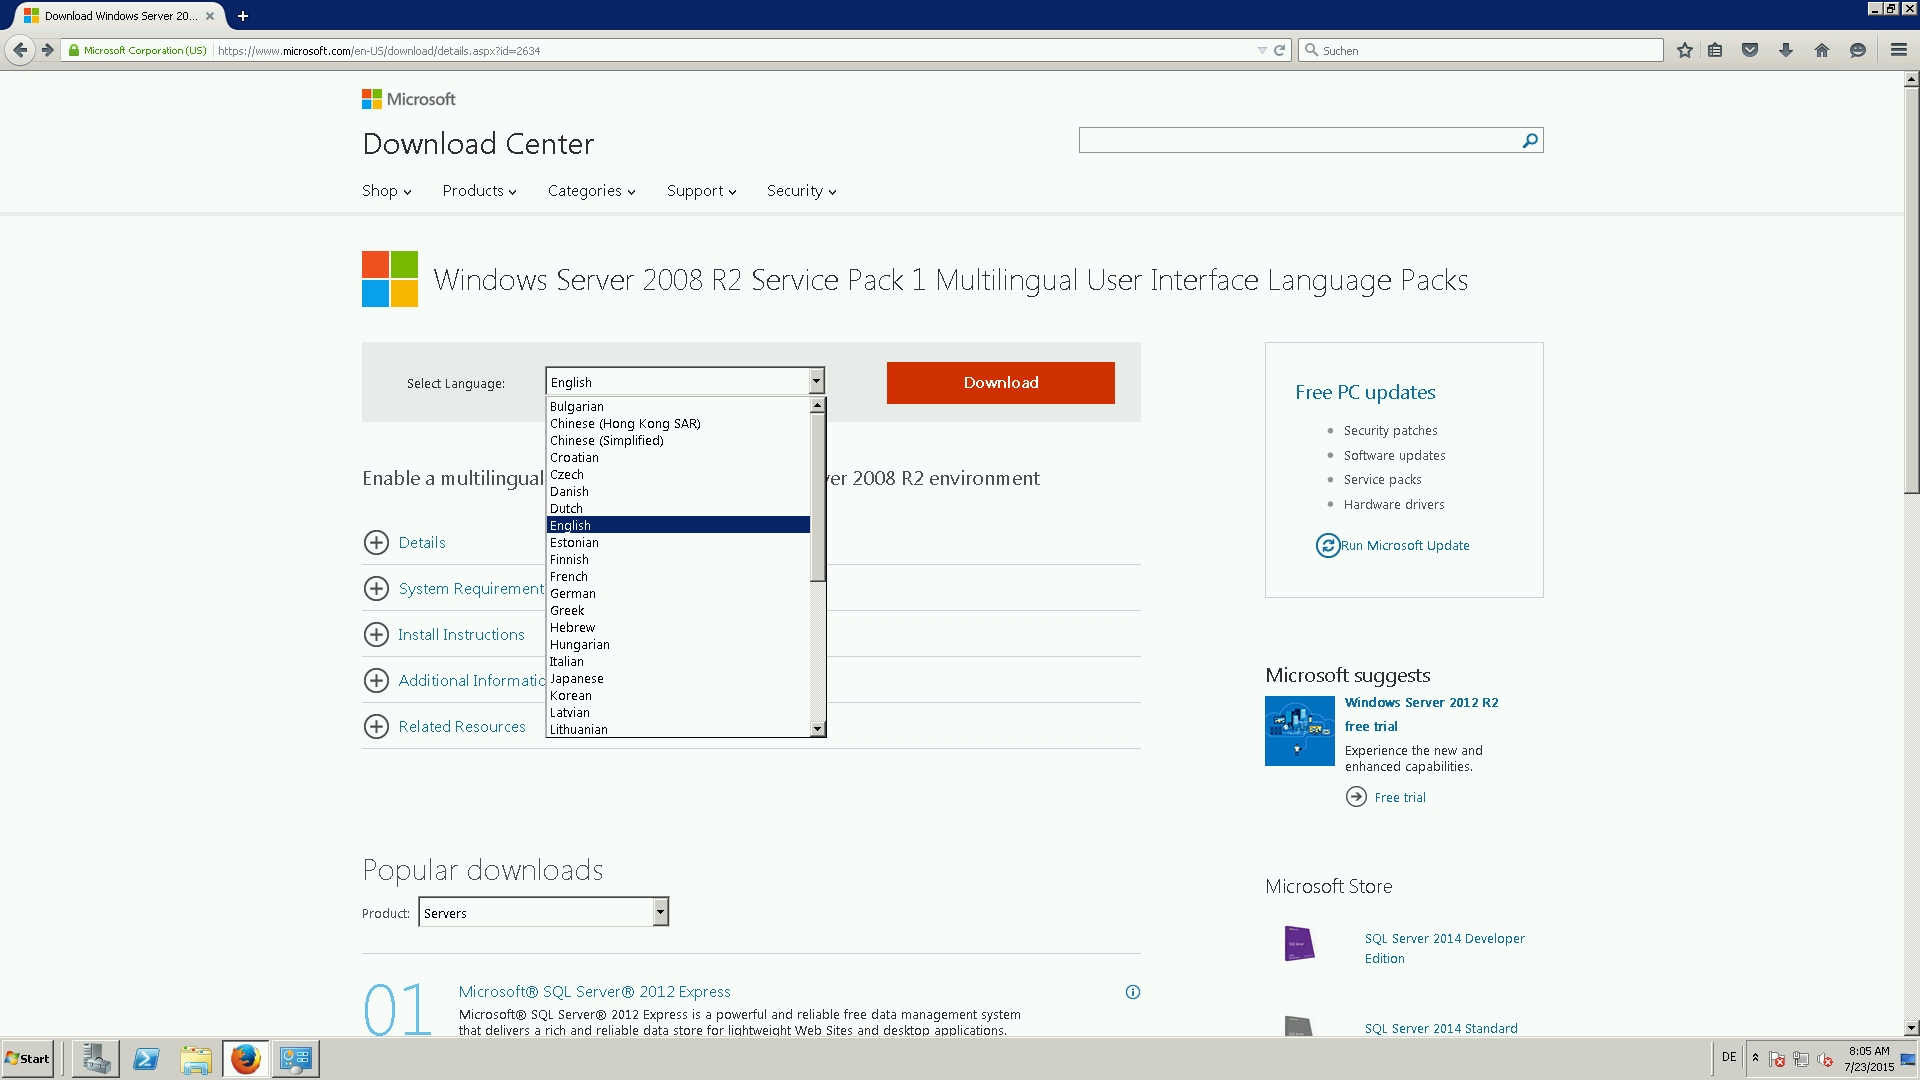 How to change the display language on Windows Server 2008 R2